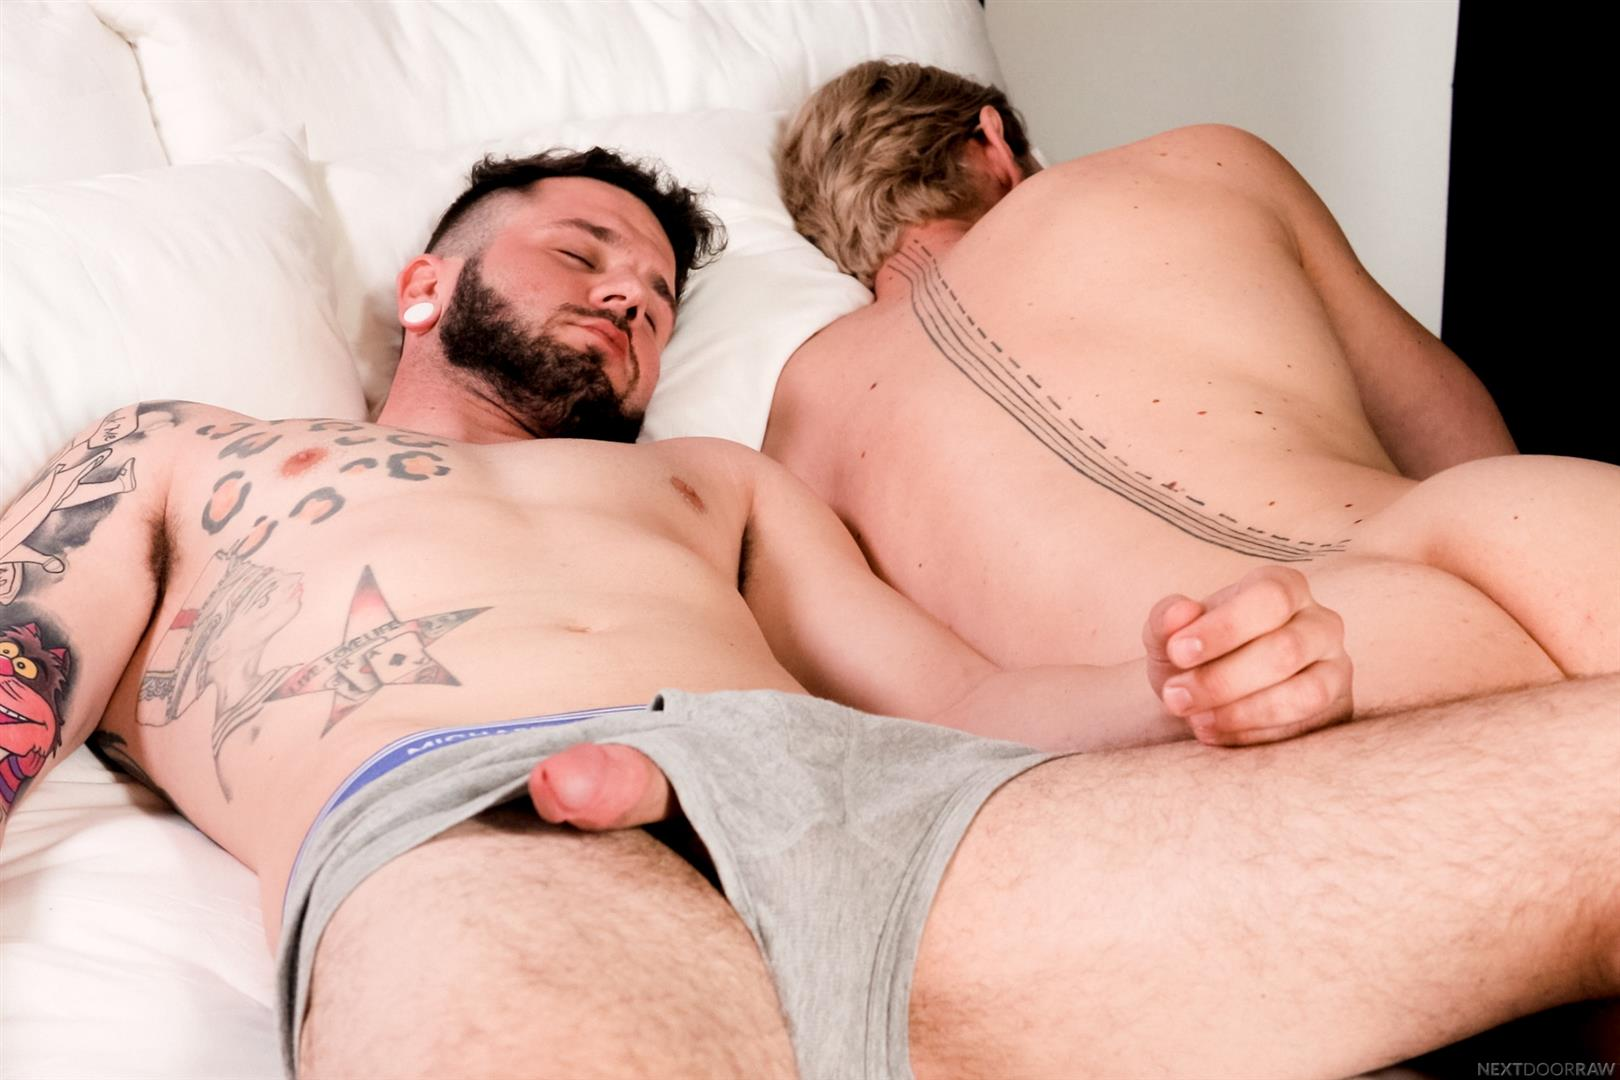 Next-Door-Raw-Johnny-Hill-and-Jacob-Peterson-Straight-Best-Friends-First-Time-Gay-Bareback-Sex-04 Bareback Fucking My Hairy Uncut Straight Best Friend